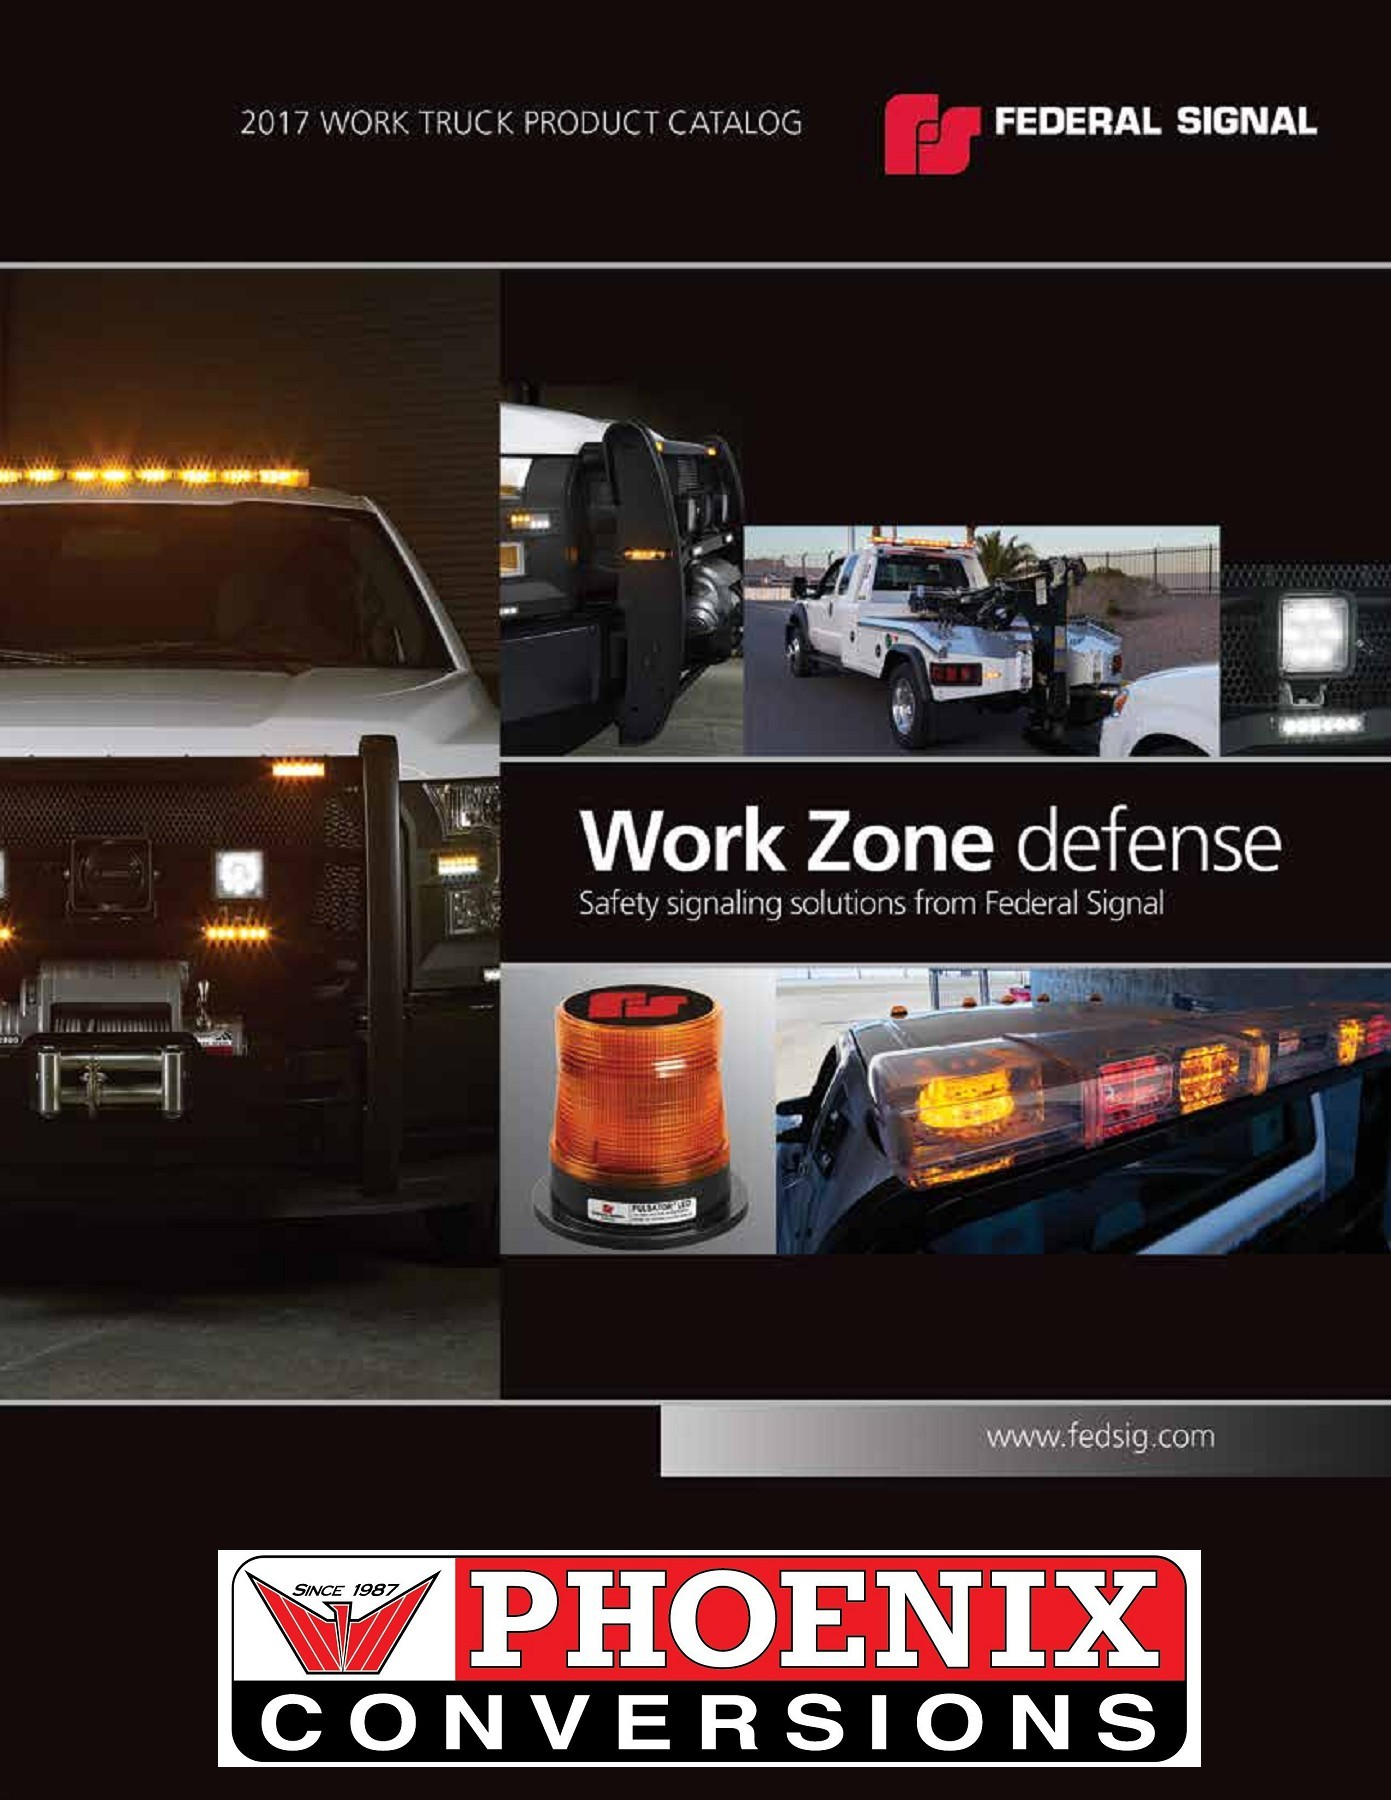 FEDERAL SIGNAL 2017 Work Truck Catalog Pages 101 - 150 ... on